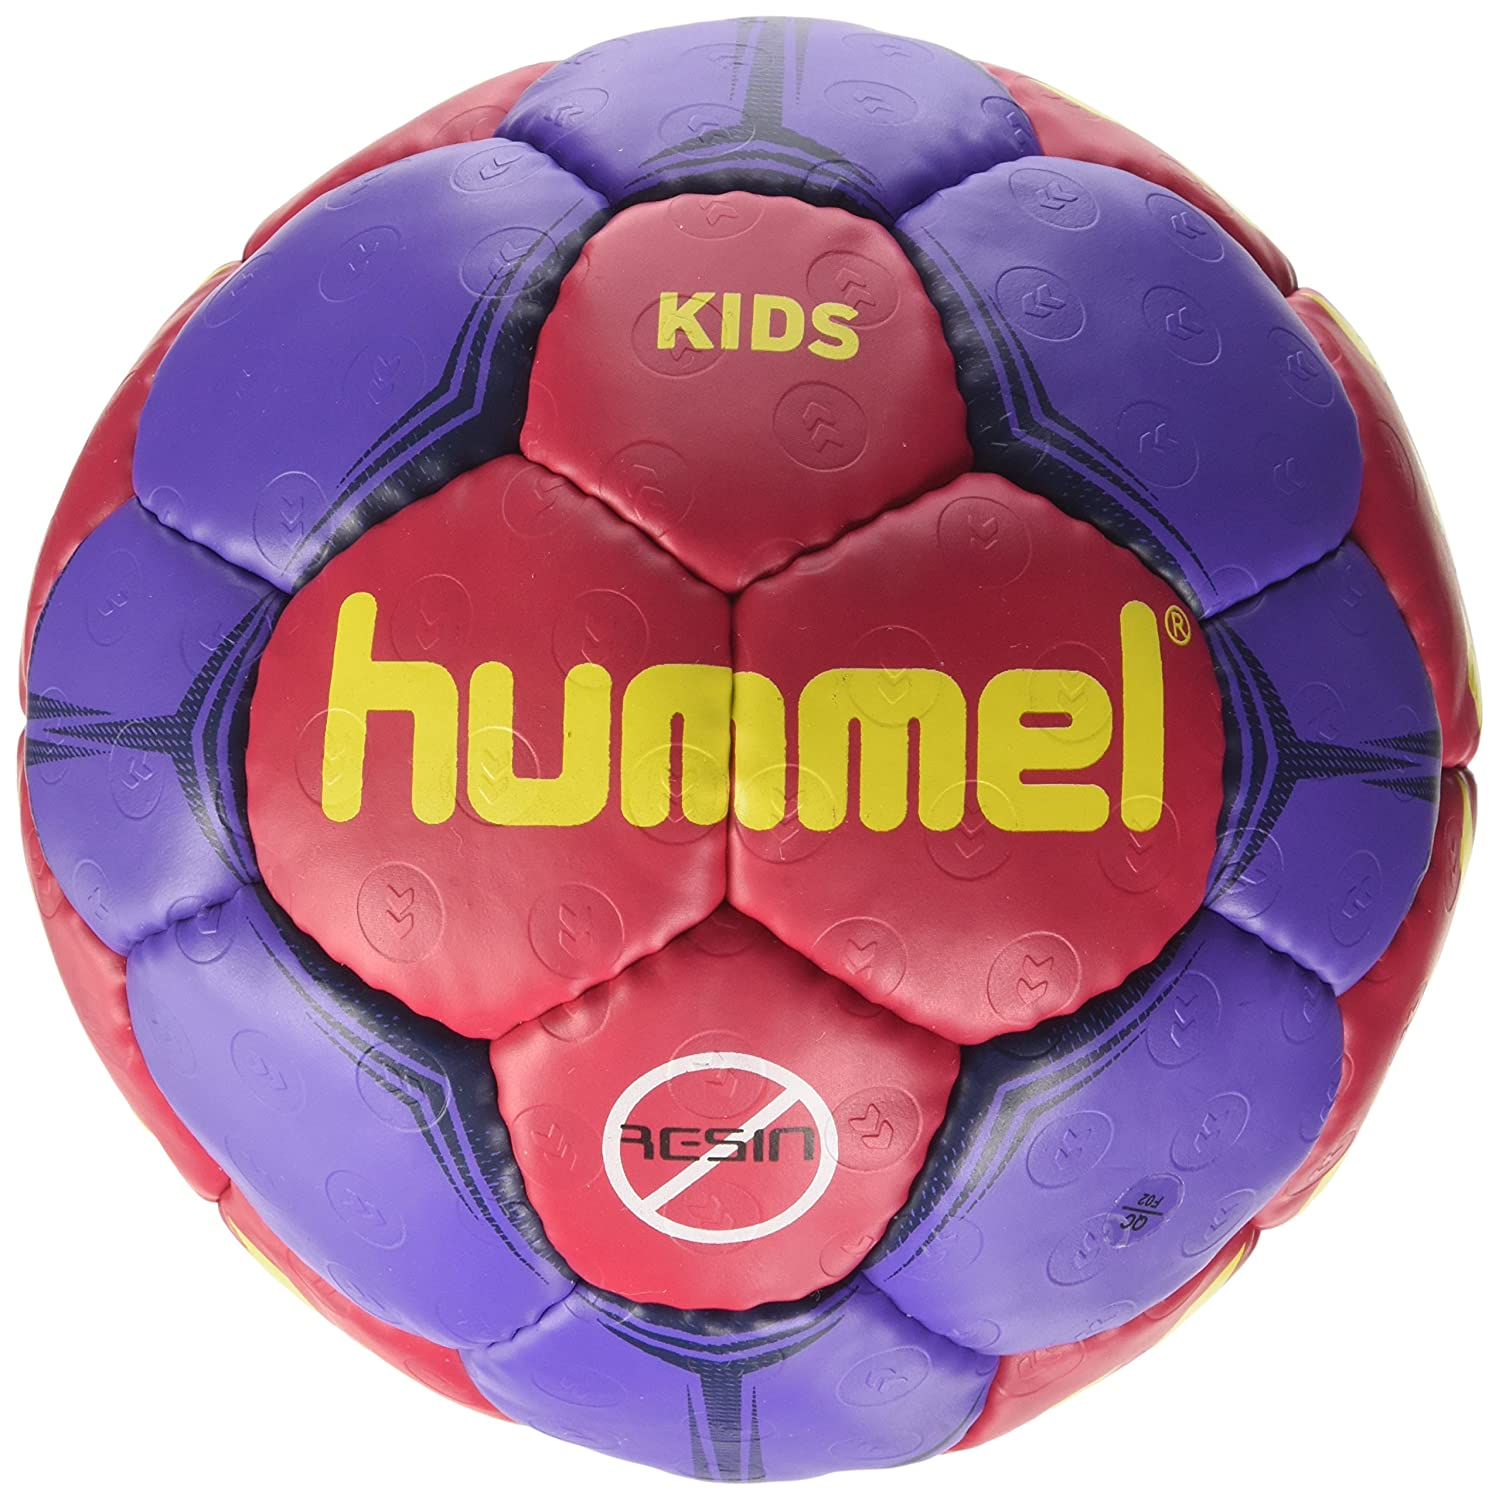 Hummel Kids Handball 1 Bright Rose/Purple/Yellow HUMBC|#Hummel 91-792-3682